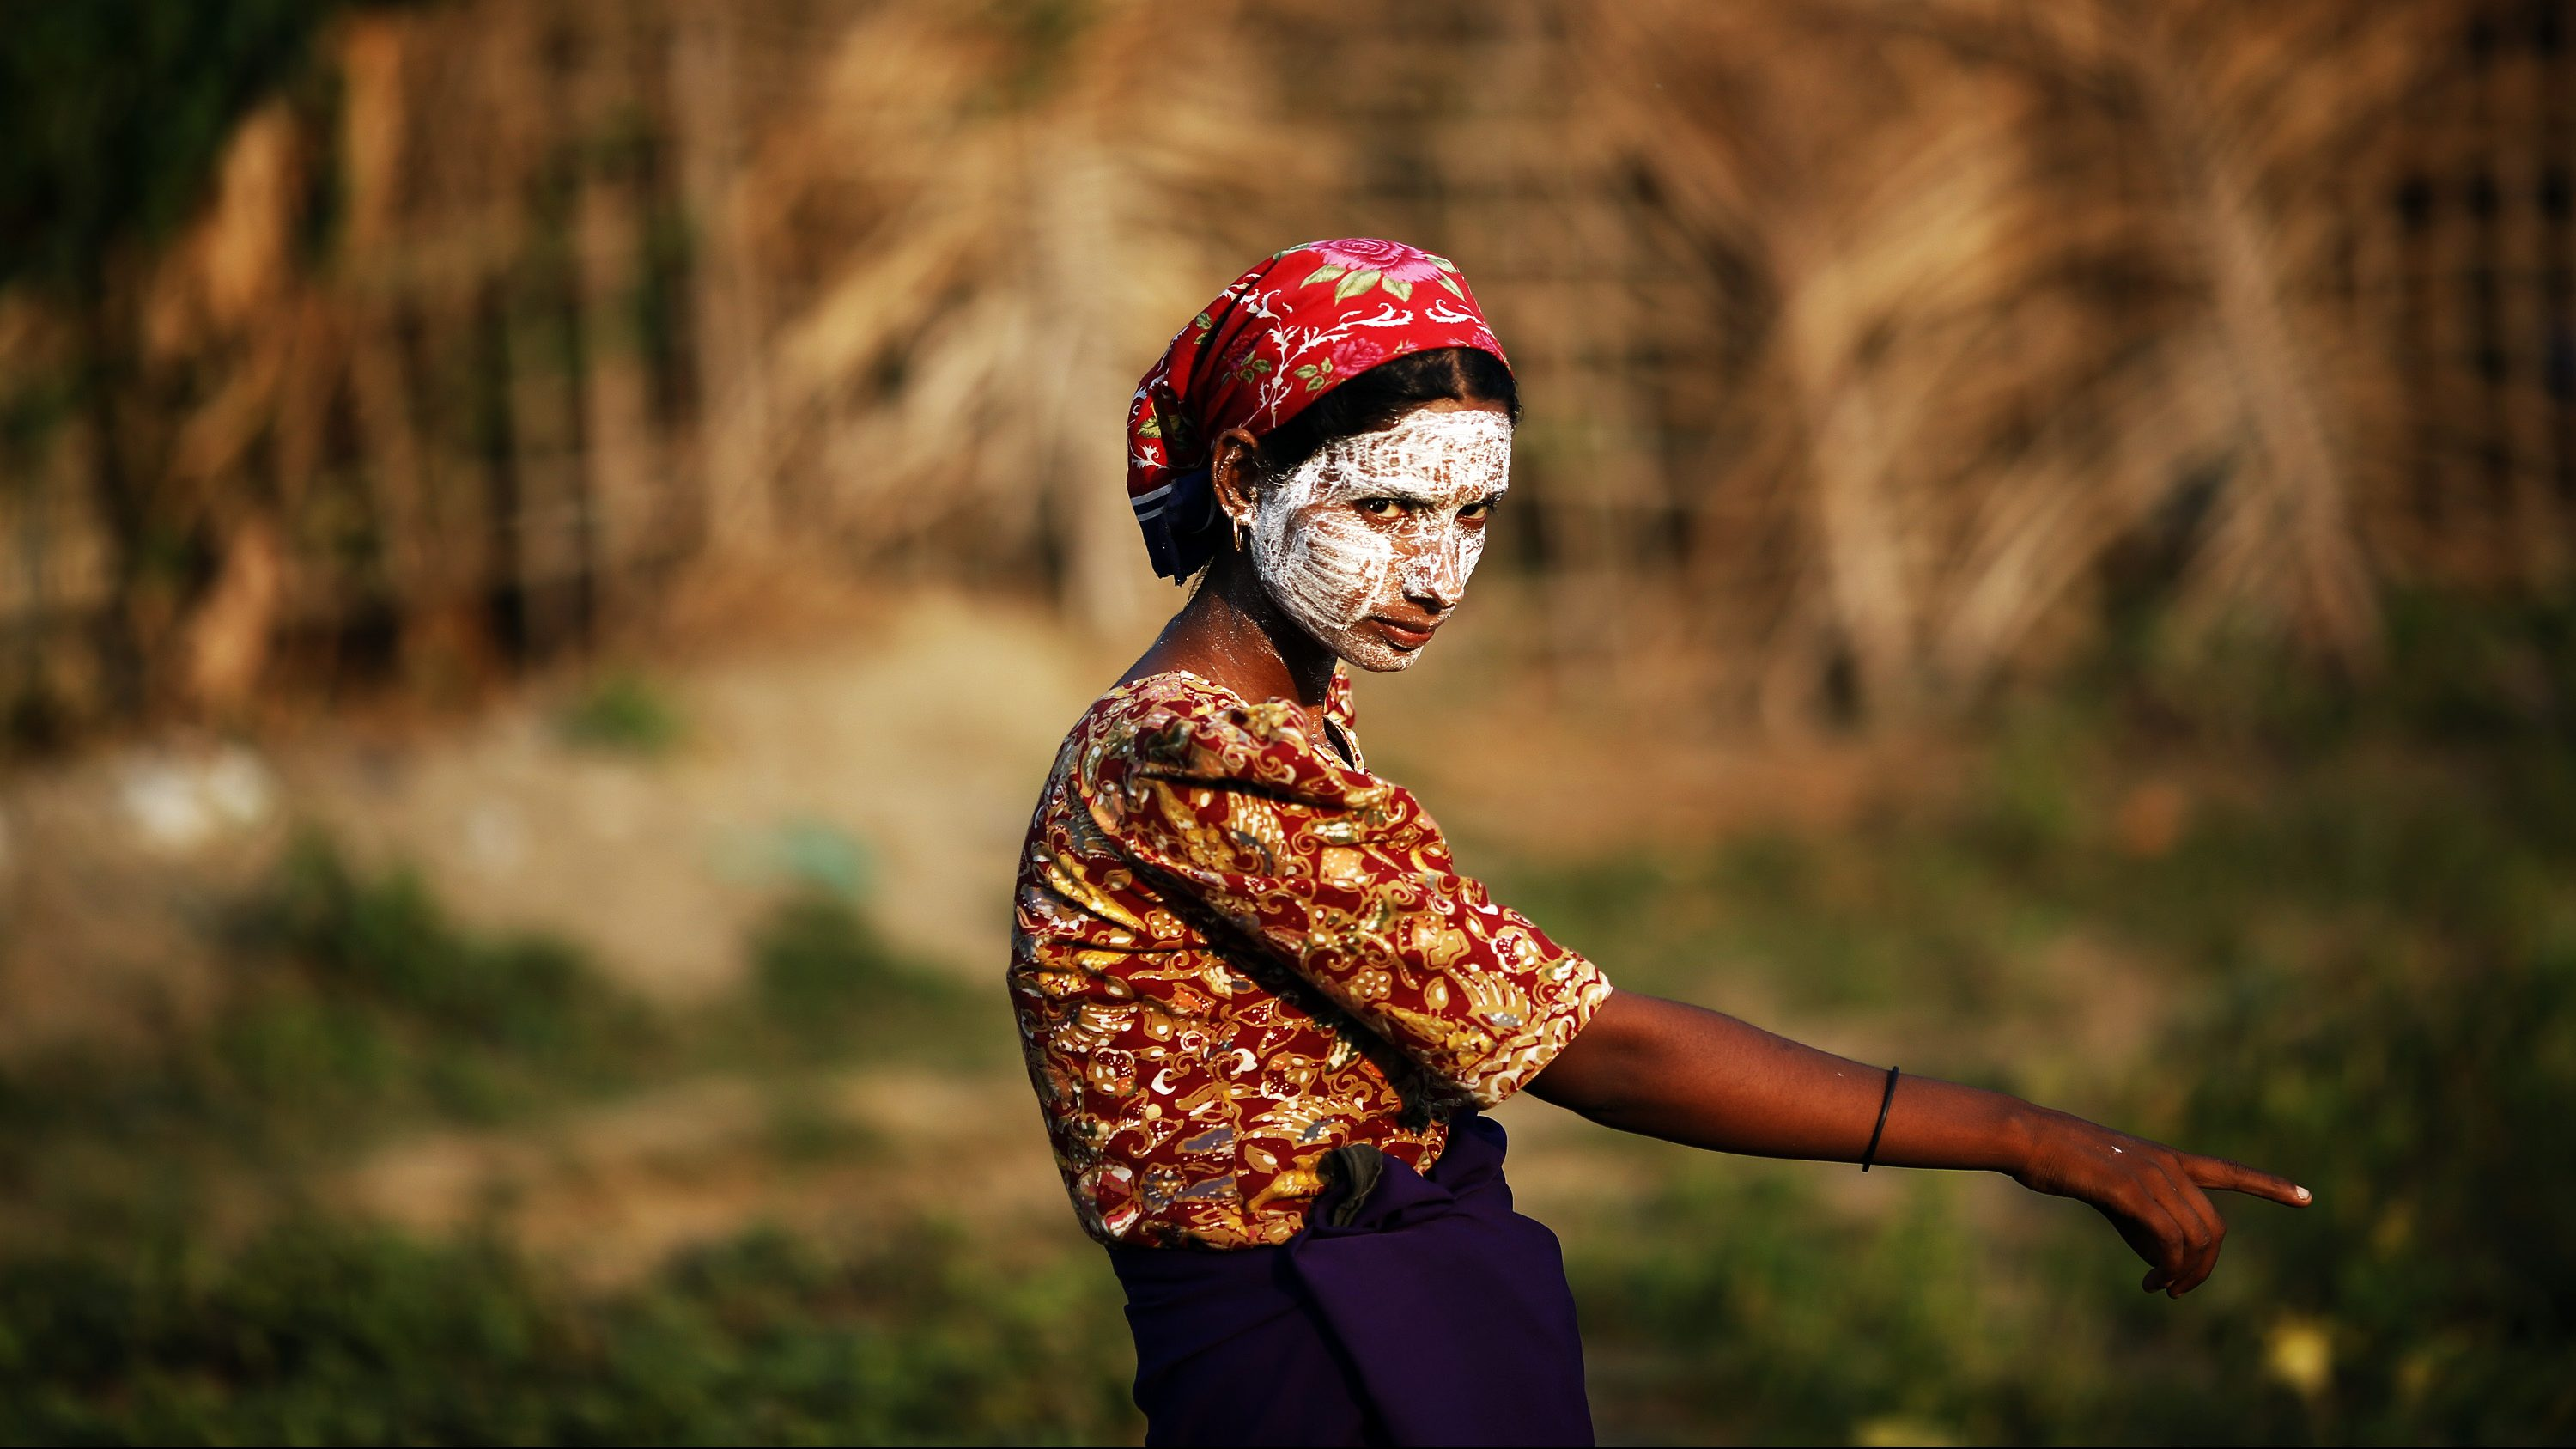 A Rohingya Muslim woman gestures in a camp for people displaced by violence, near Sittwe